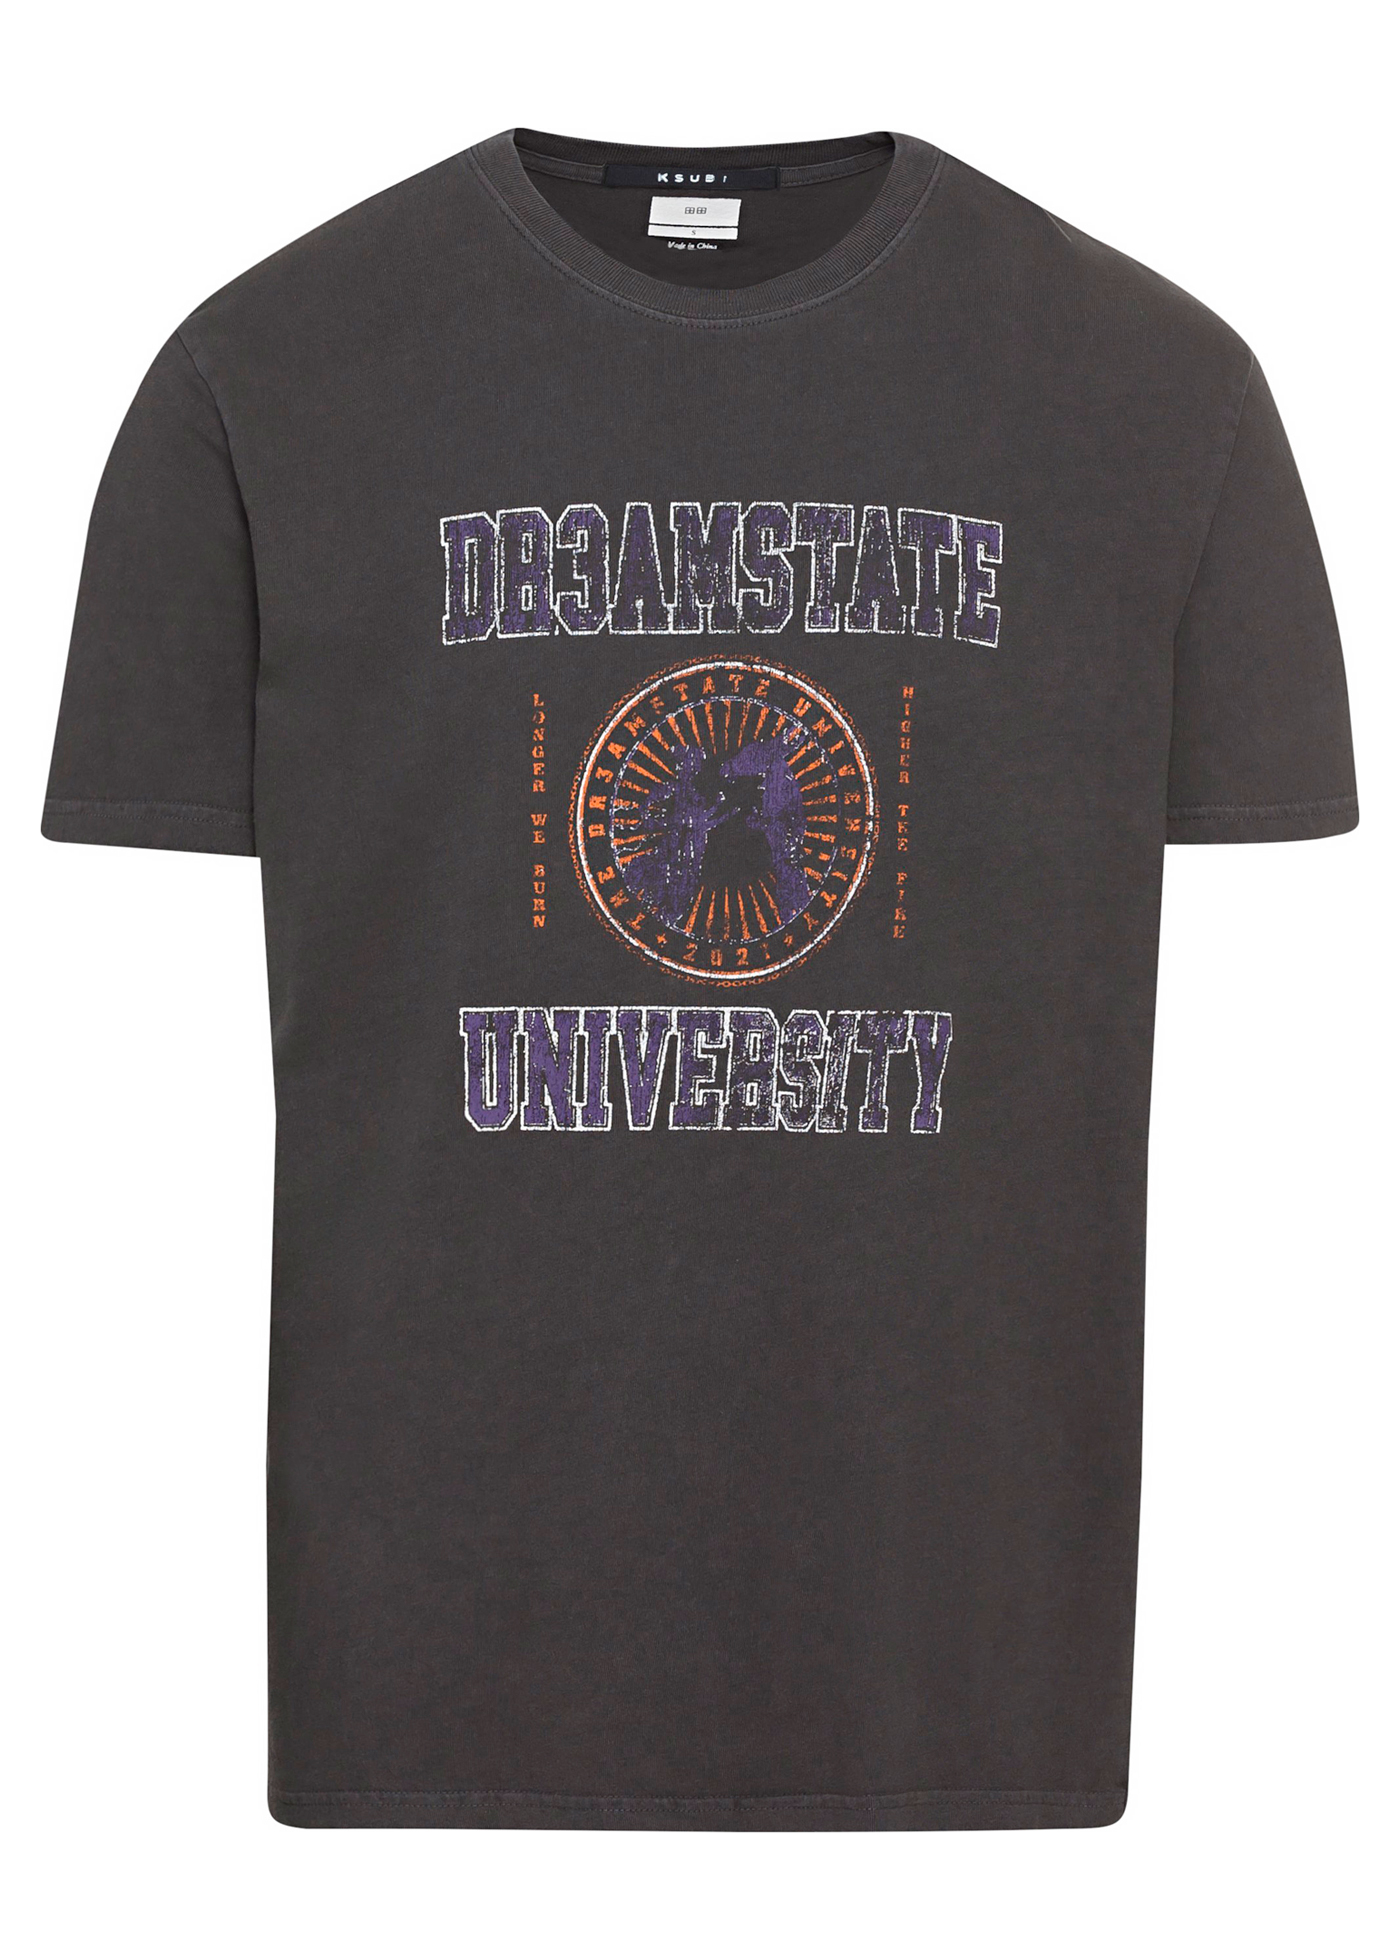 university kash ss tee charcoal image number 0